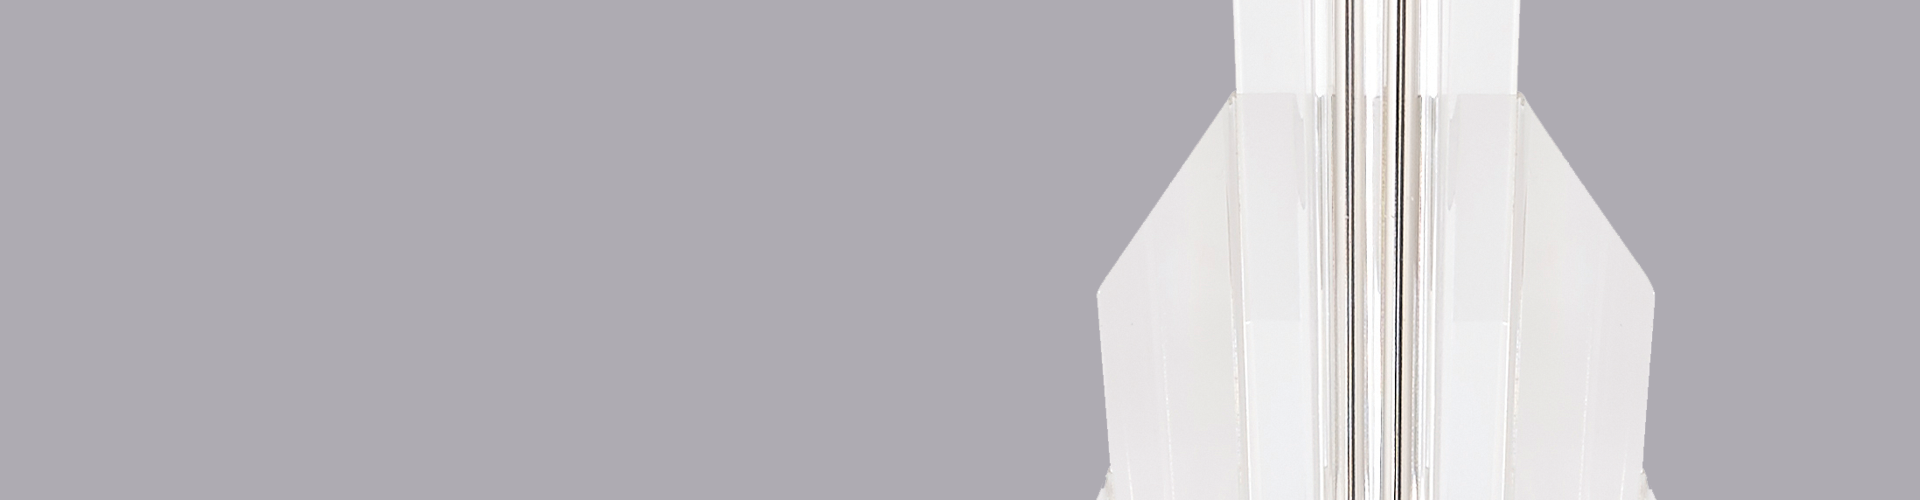 Gatsby_Header_Banners_size